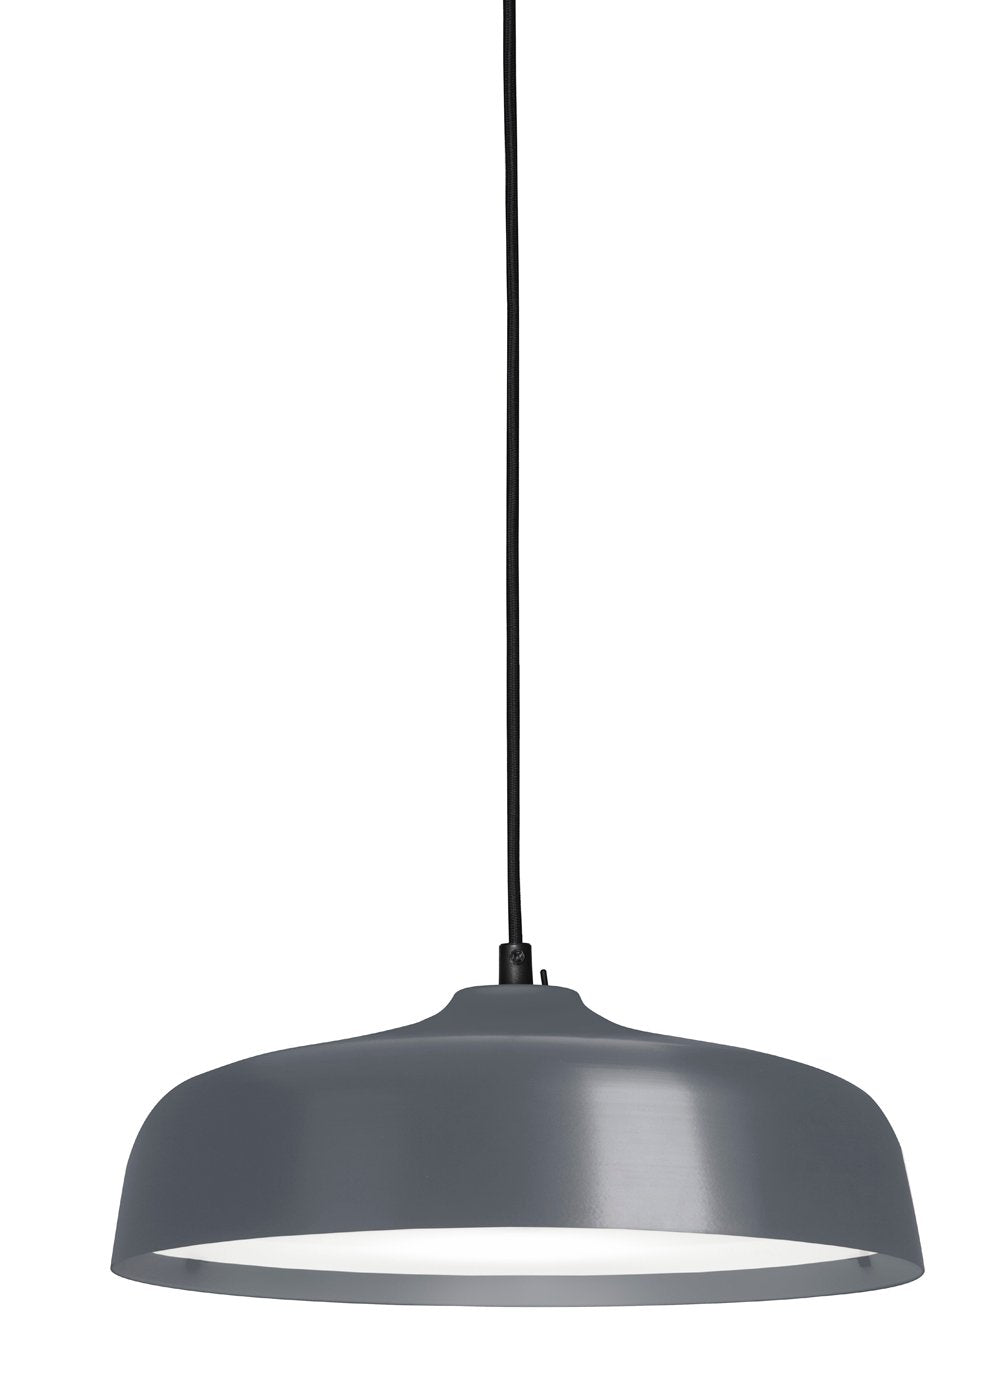 Candeo Air bright light lamp